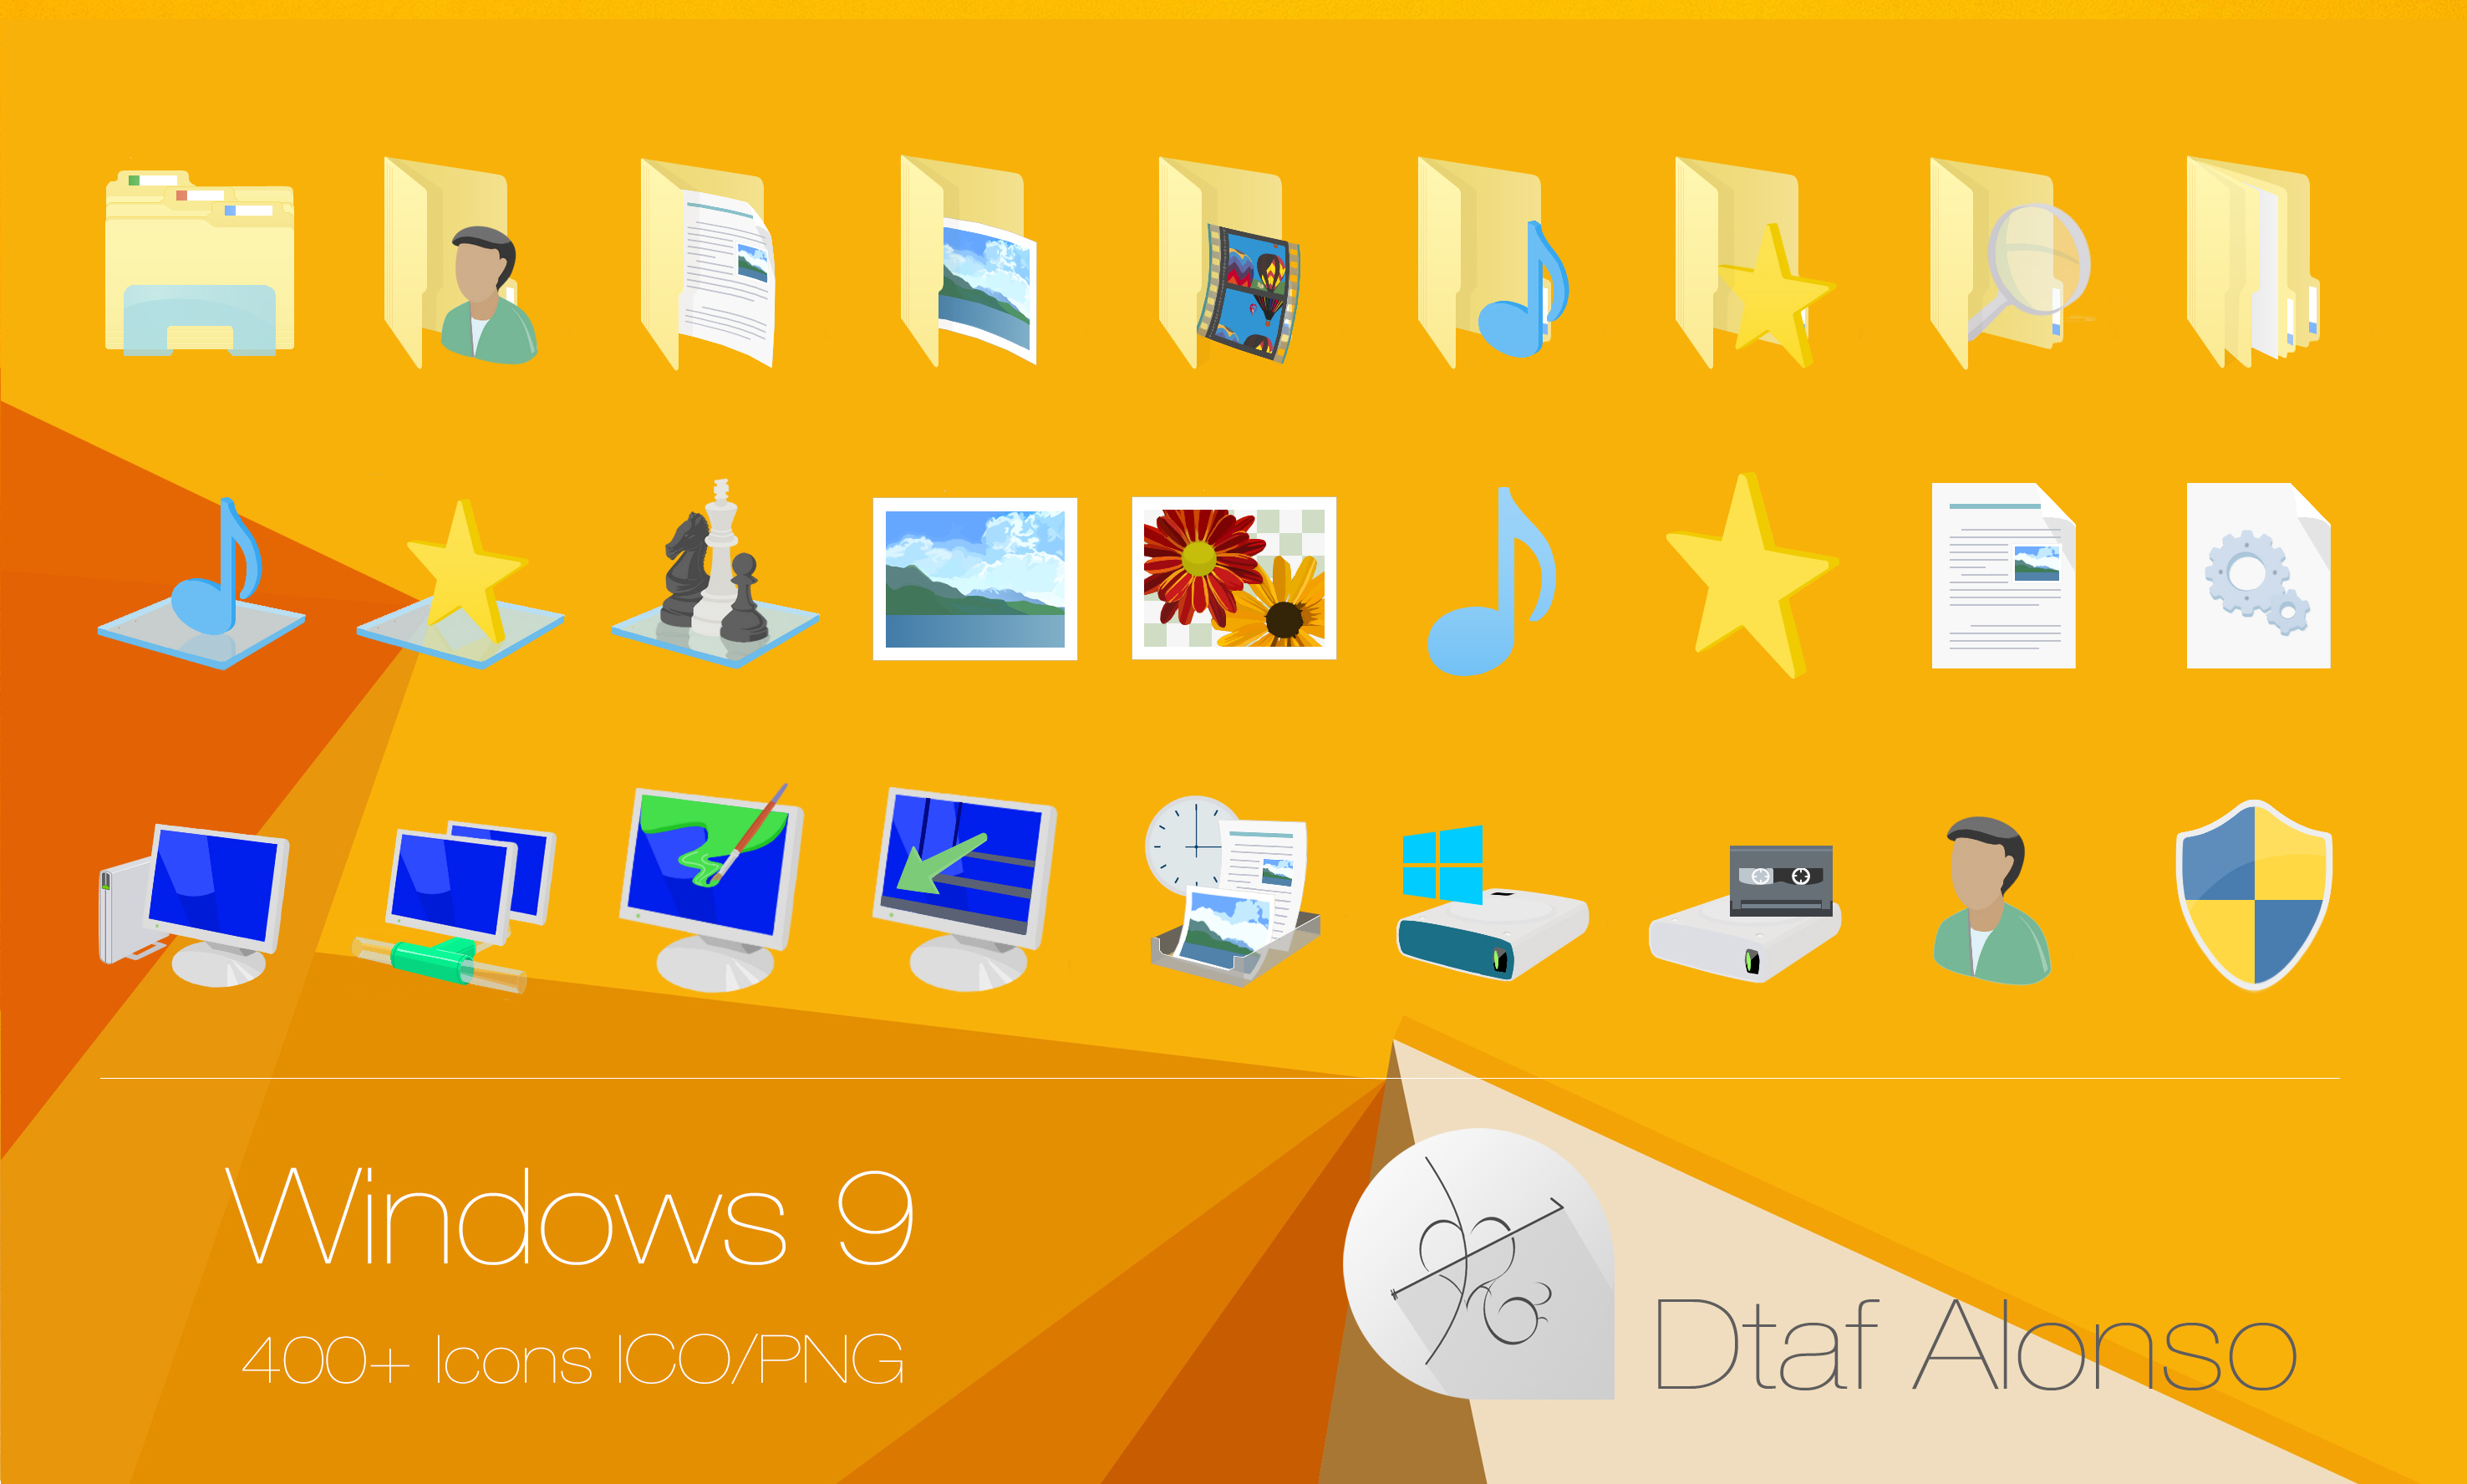 Windows 10 Folder Icon Download #68976 - Free Icons Library